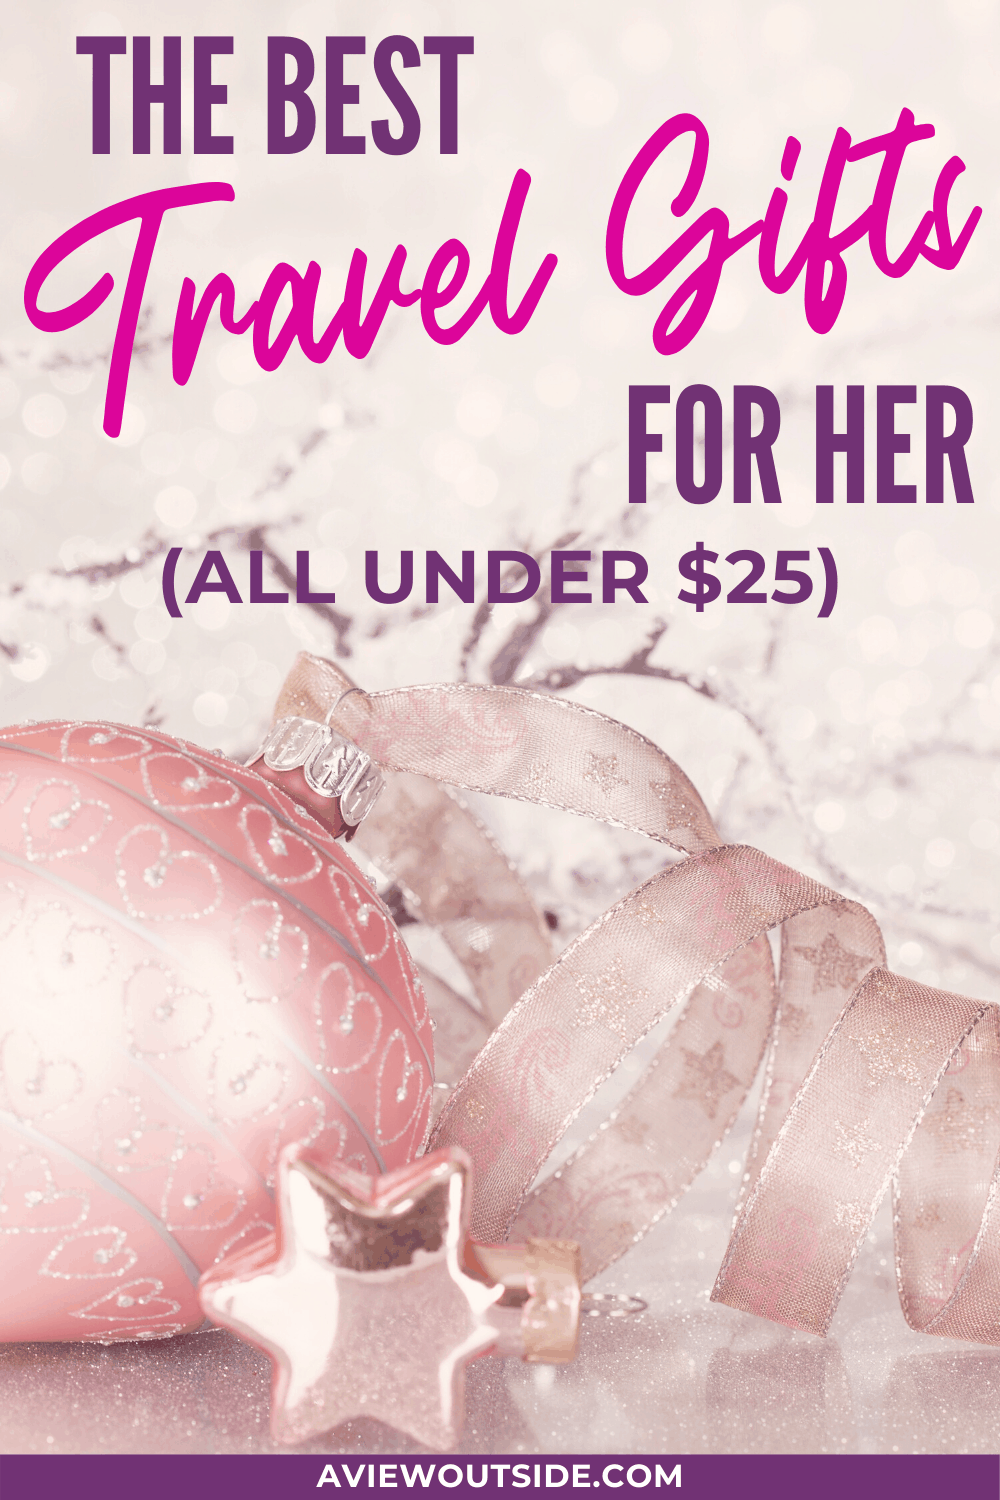 Travel gifts for her under $25